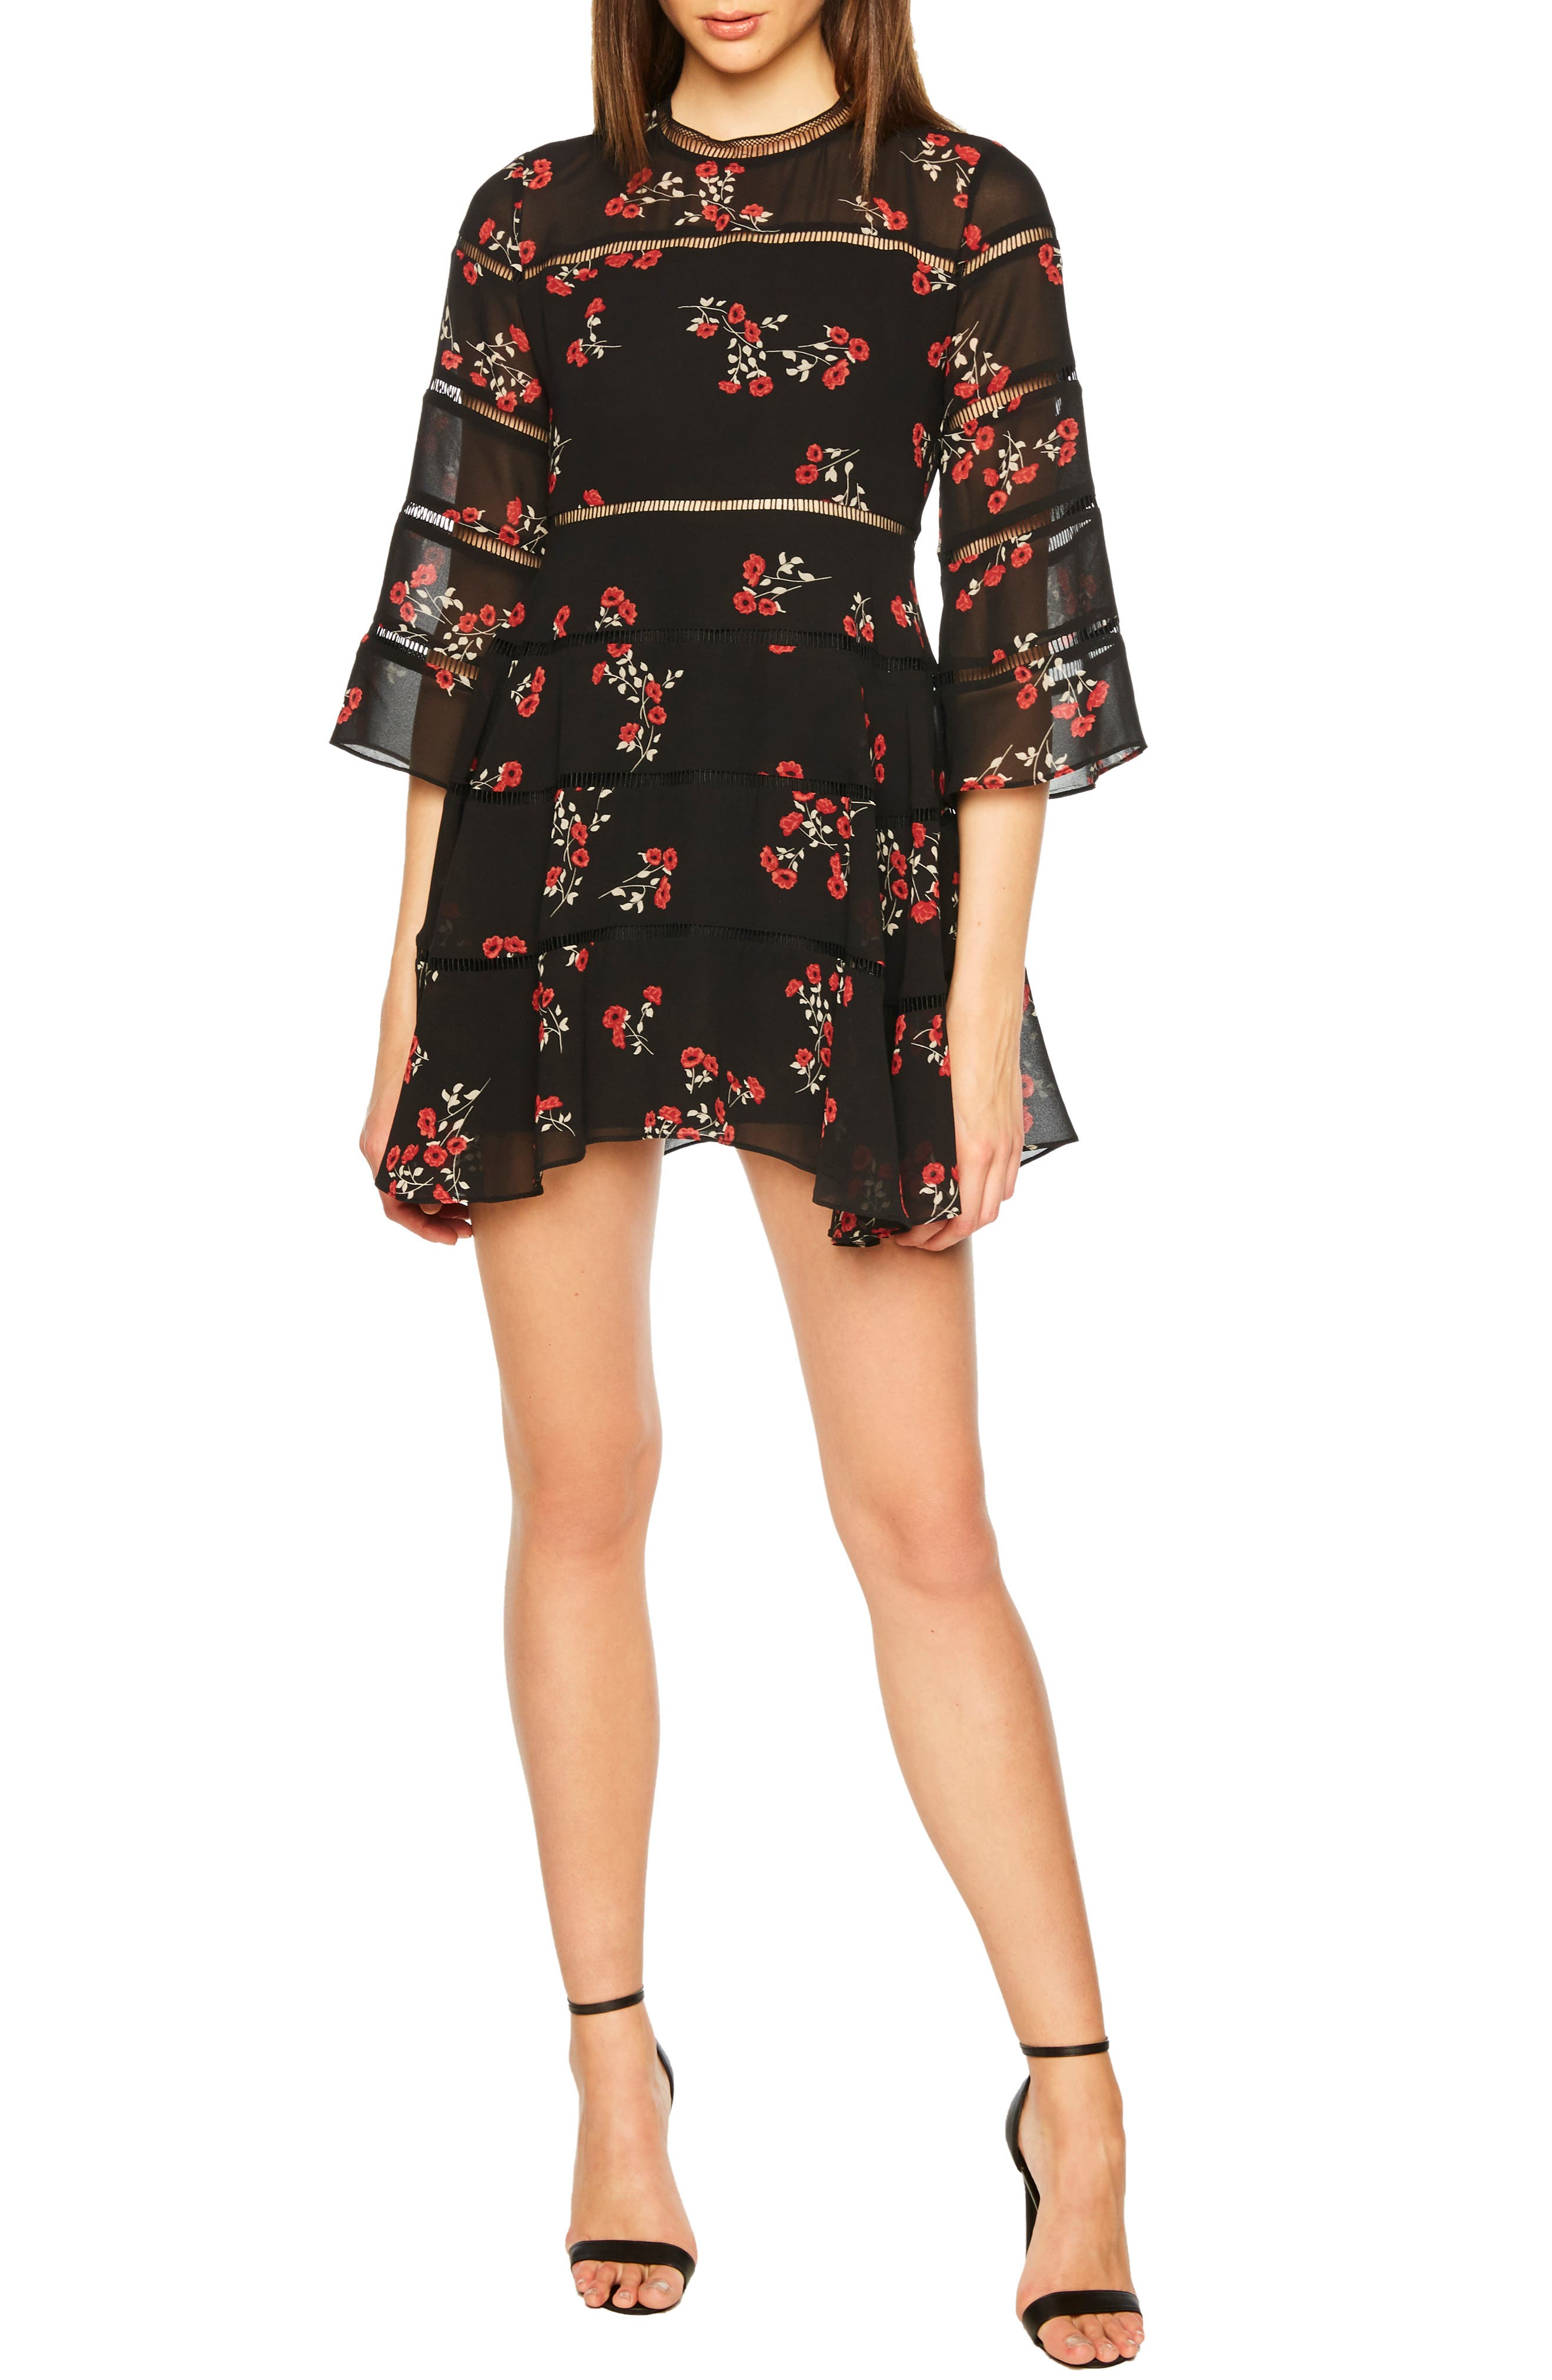 Bardot Poppy Print Dress, Black